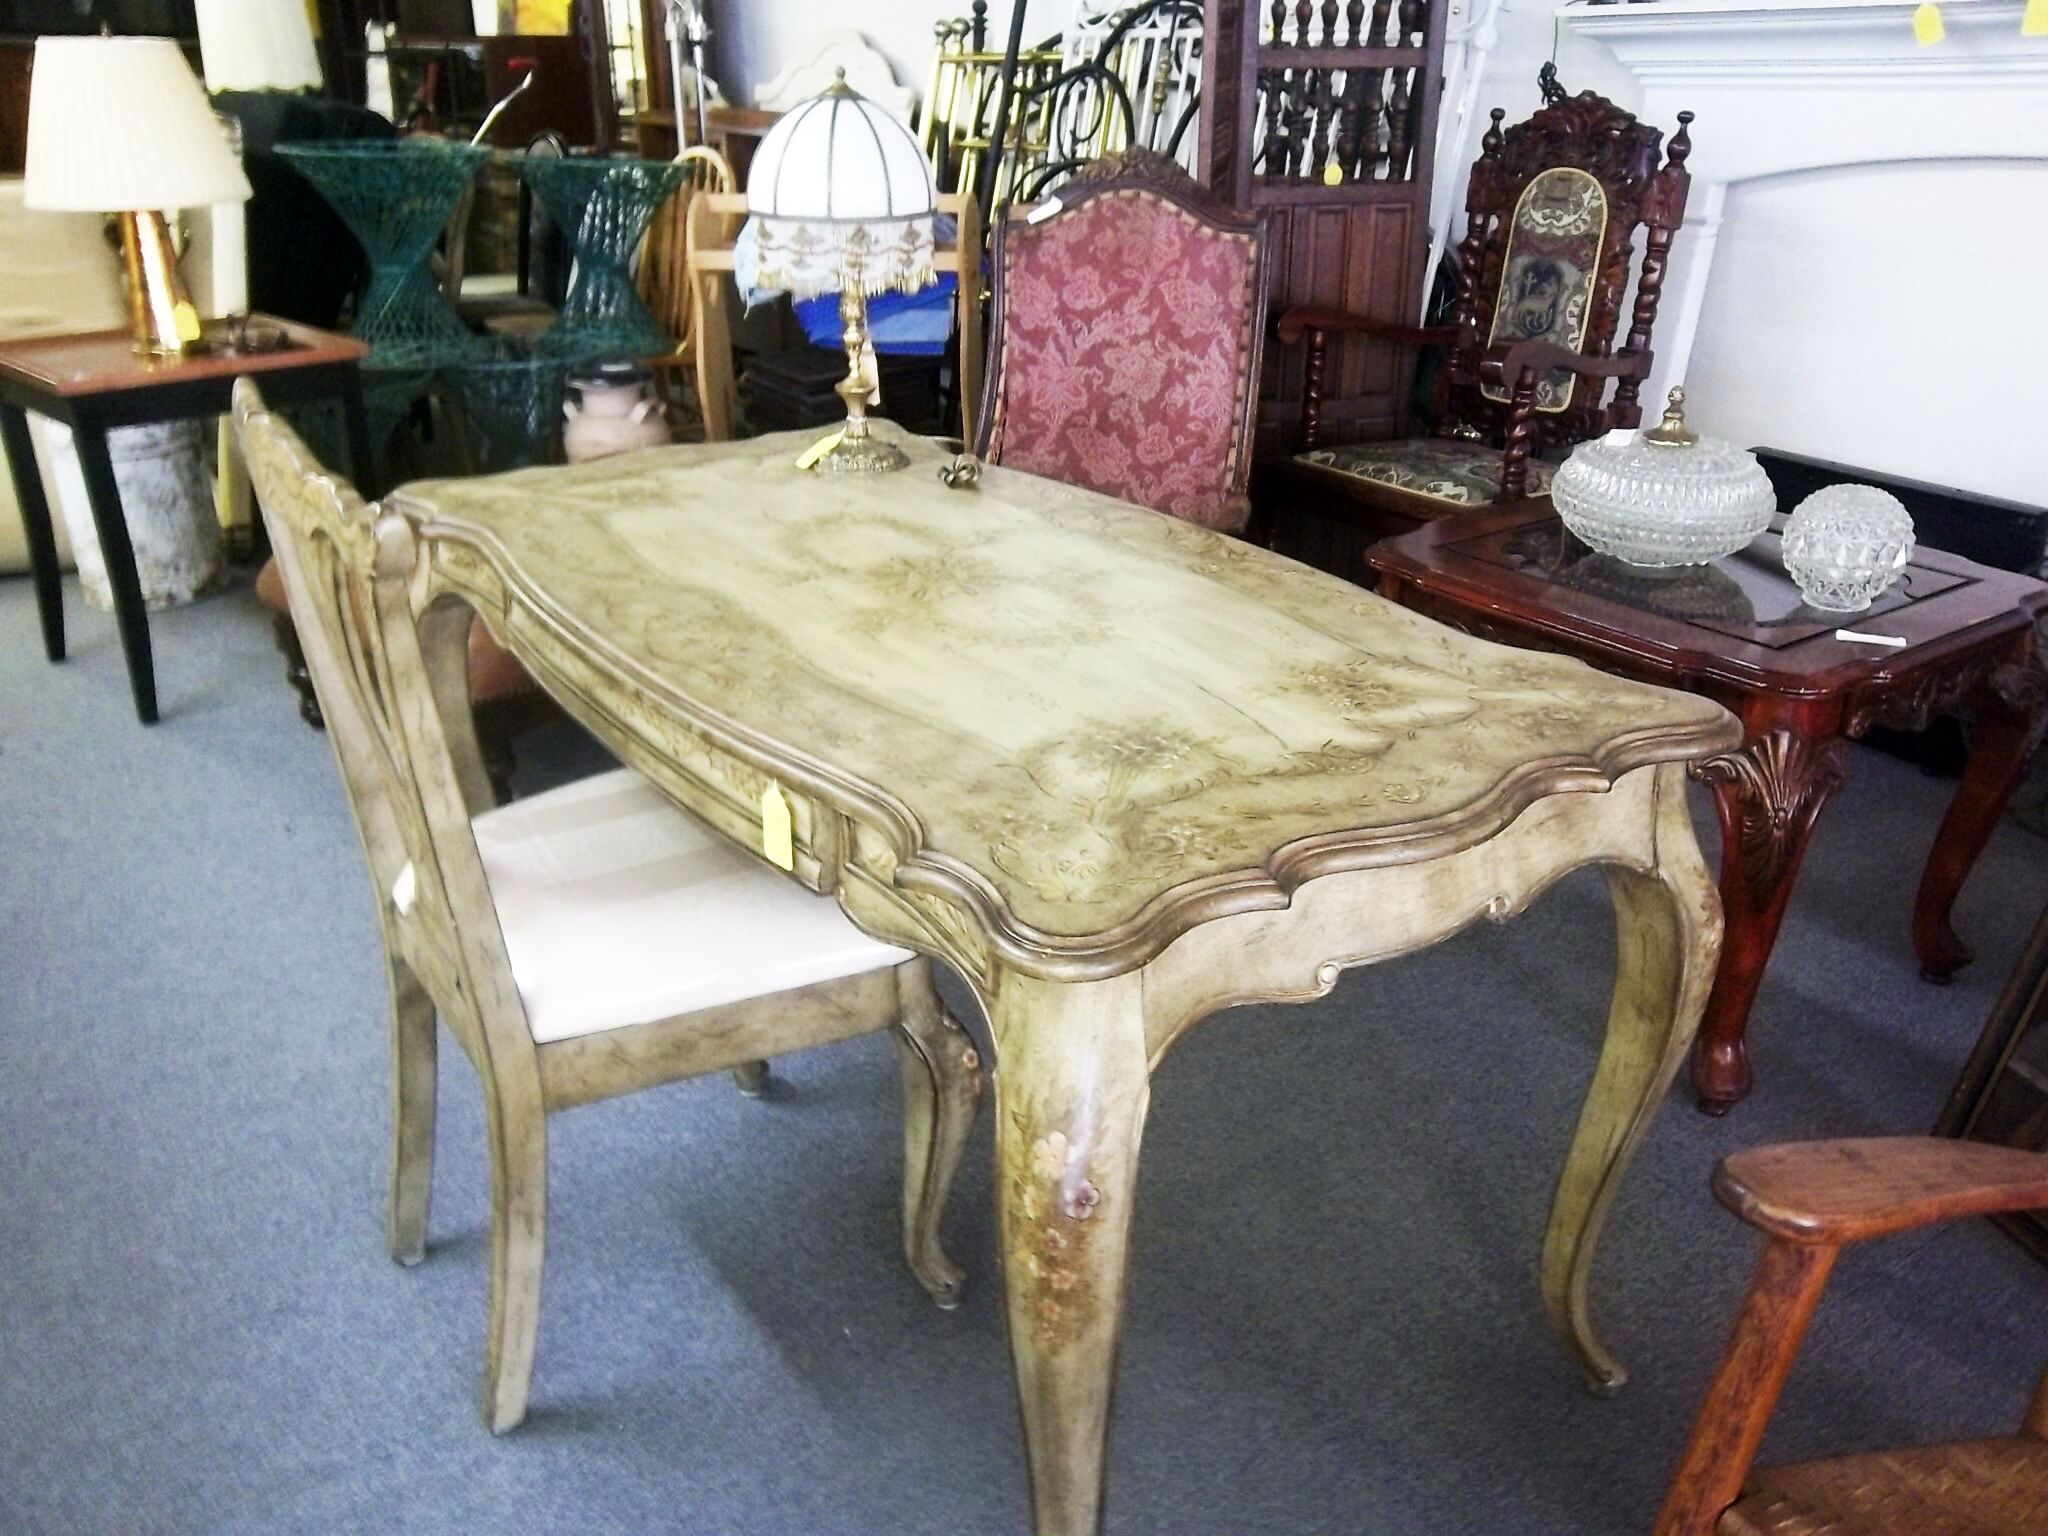 Antique Dining Table For Sale Visit Us At Our Store In Linden Nj